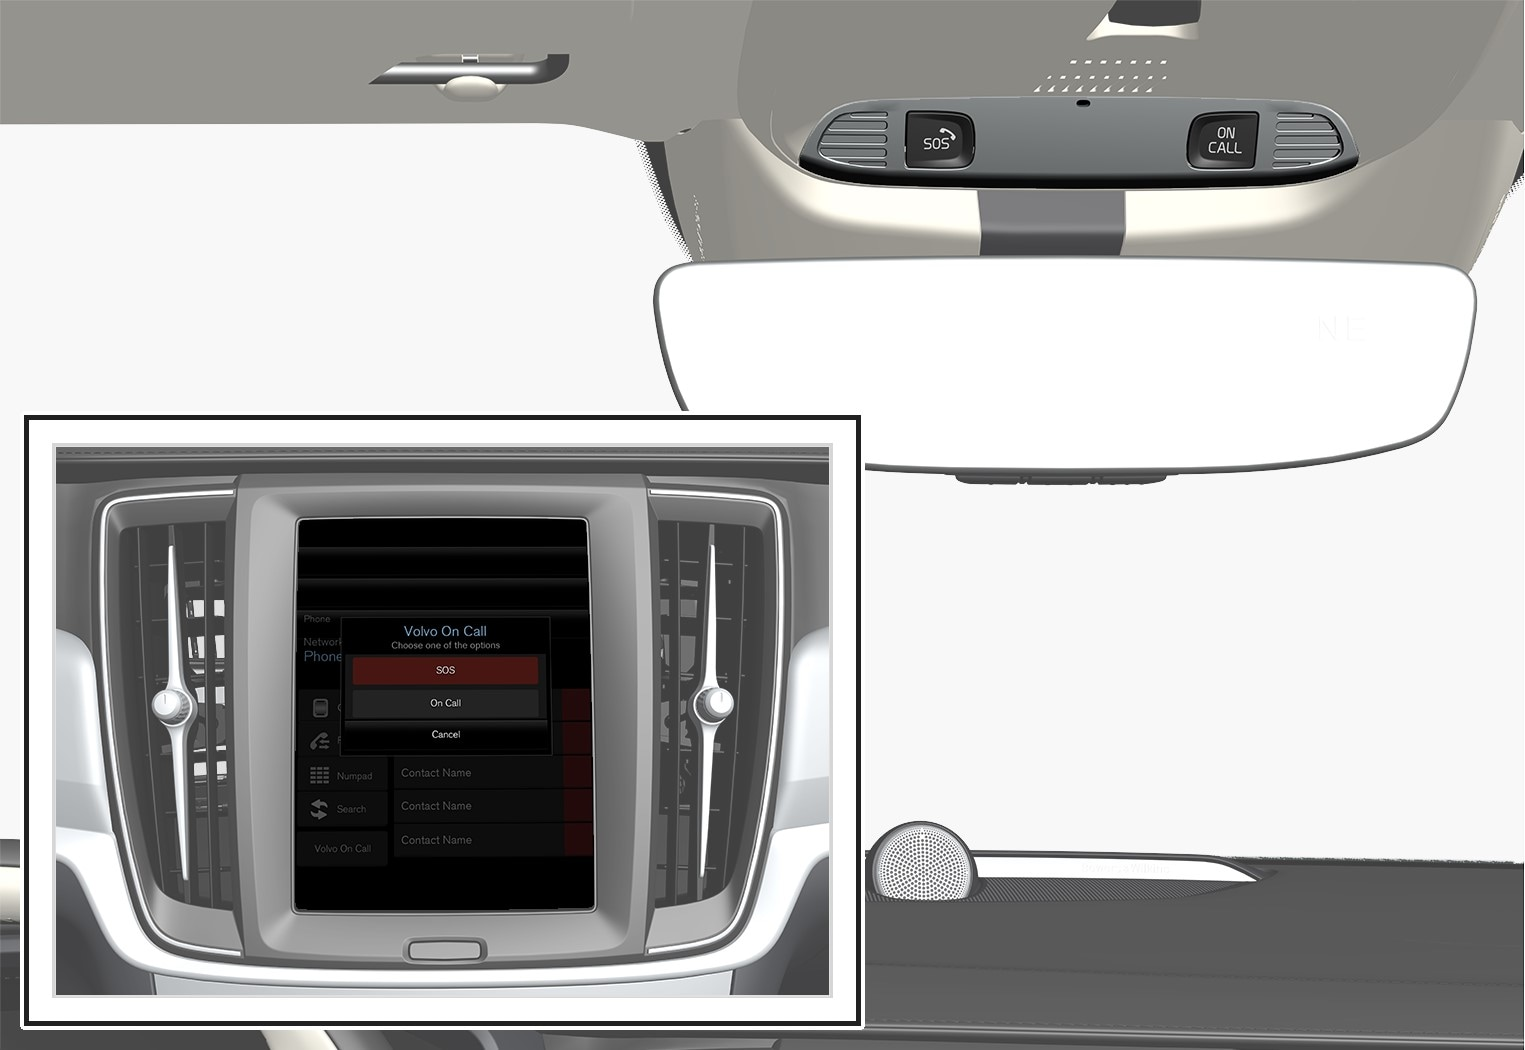 P5-1617-S90 V90 Volvo On call button